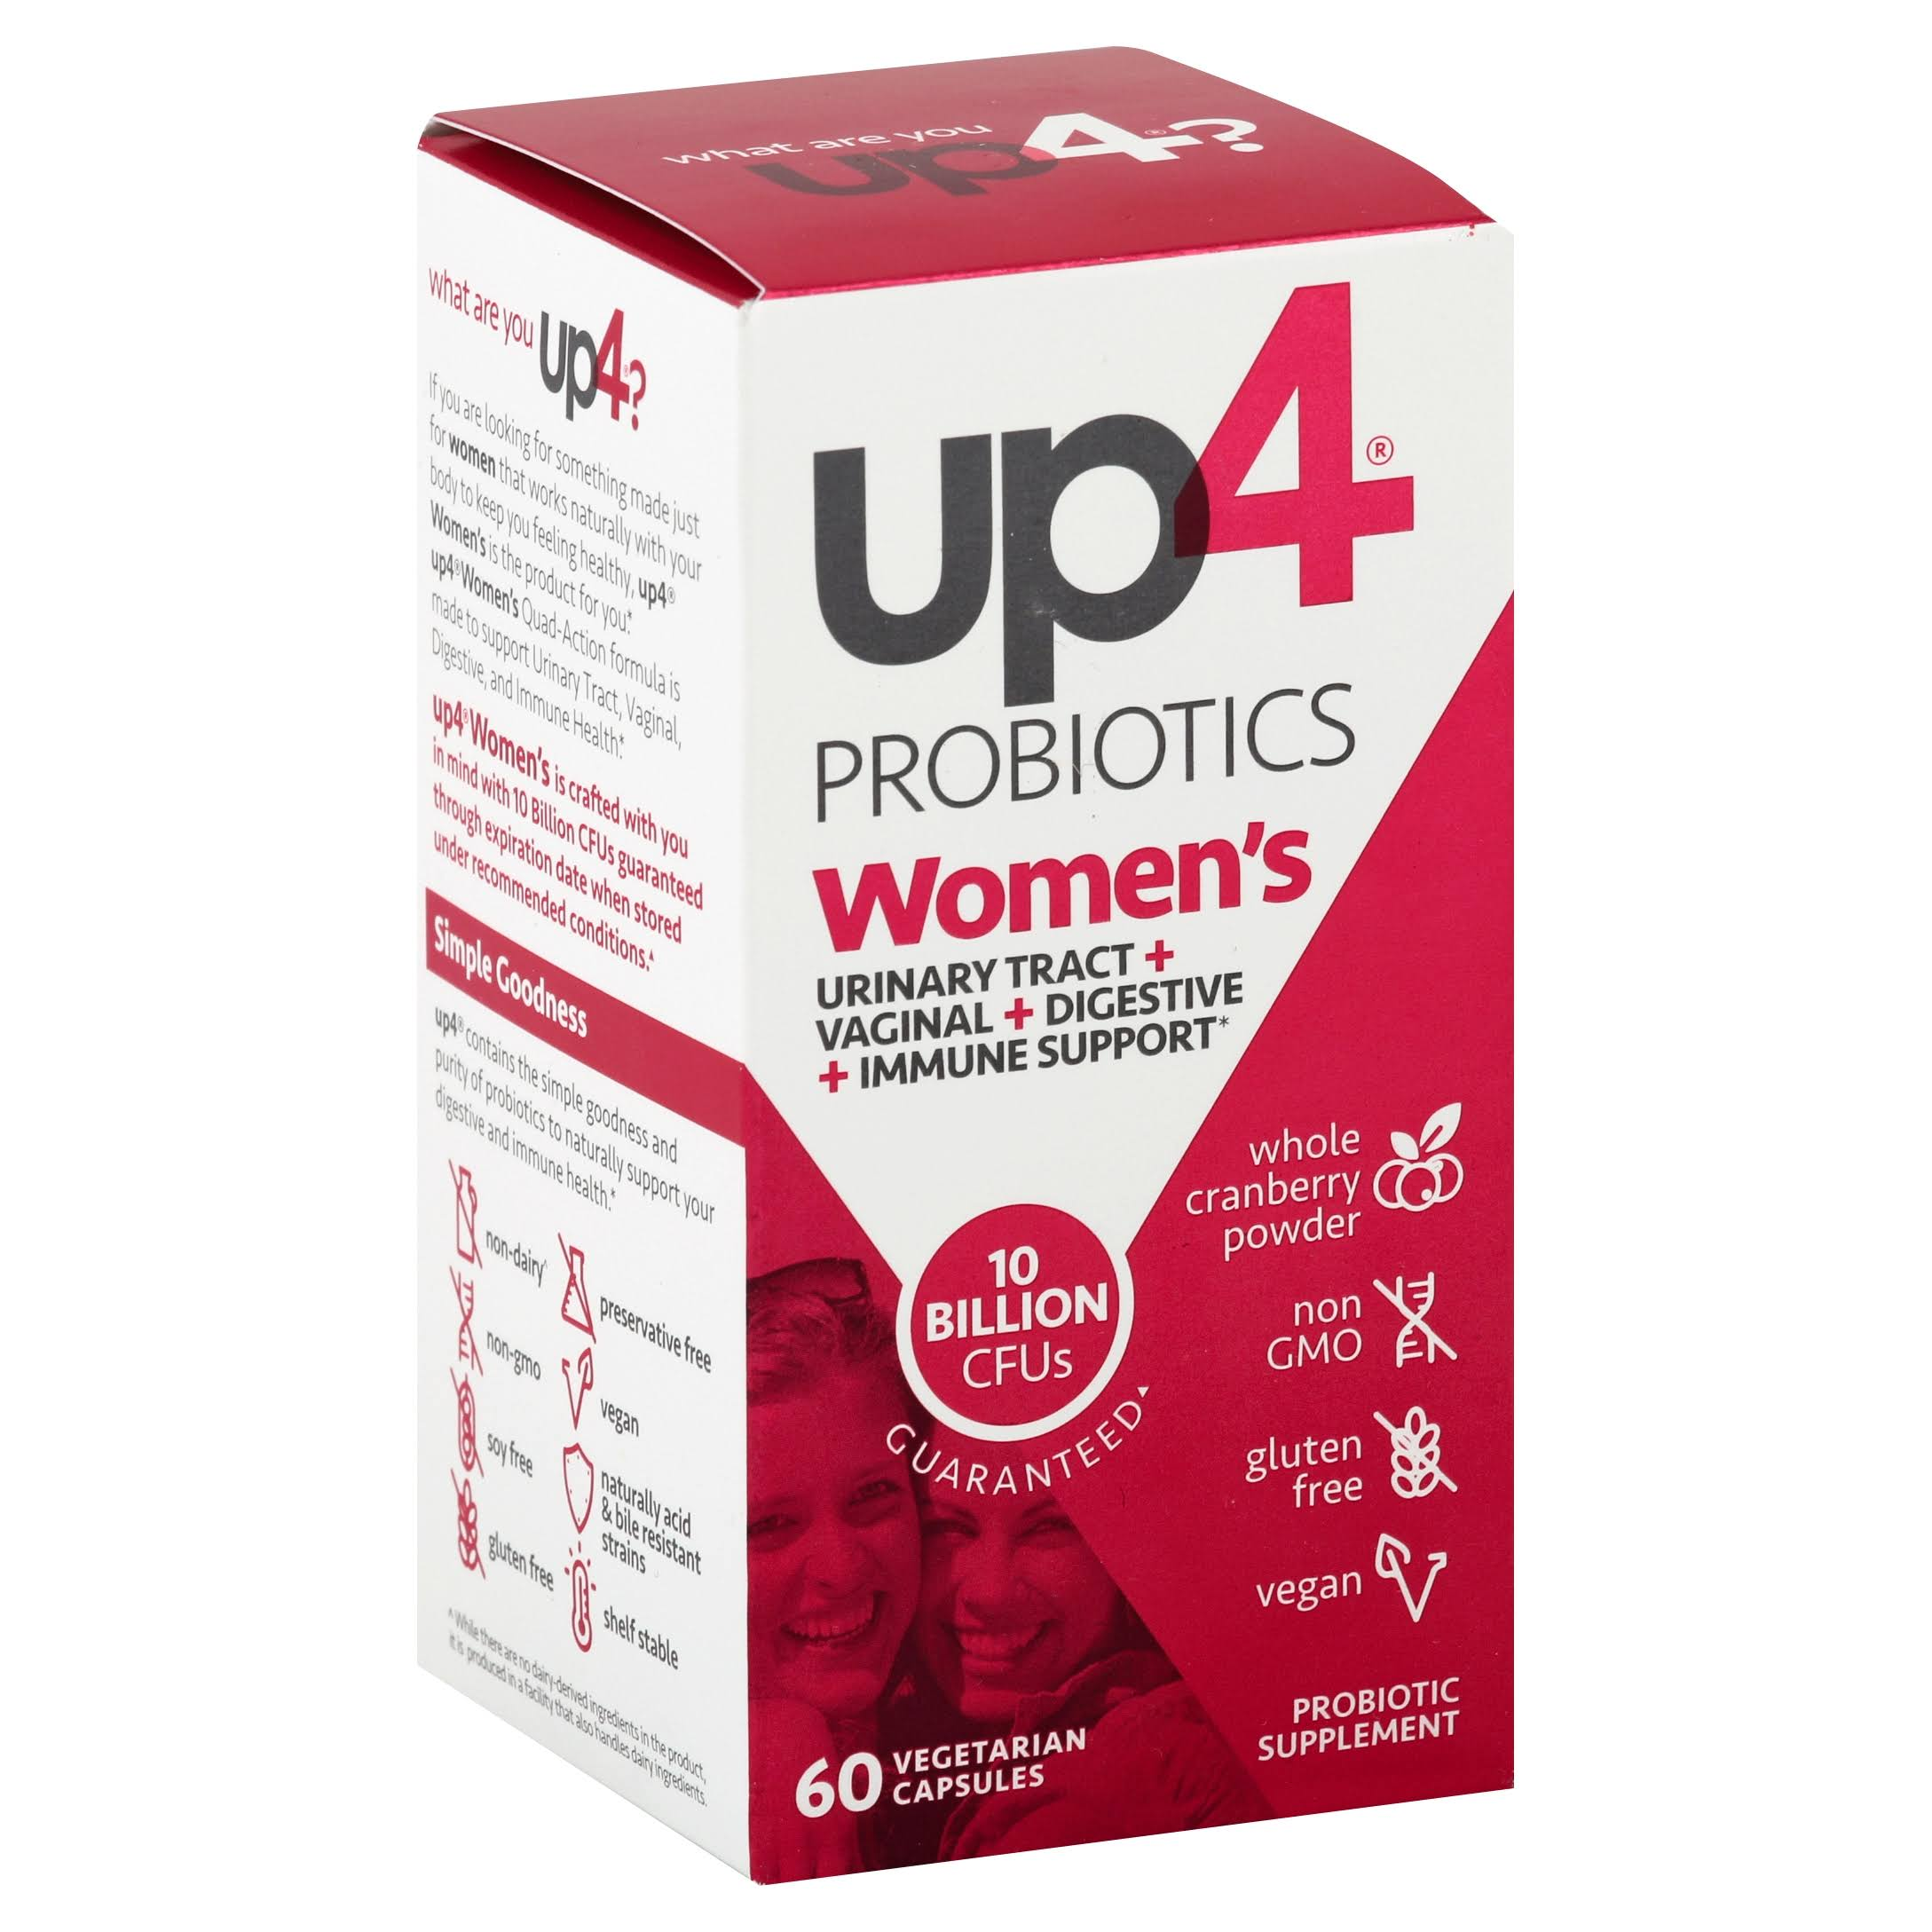 UP4 Women's Probiotic Supplement with Cranberry